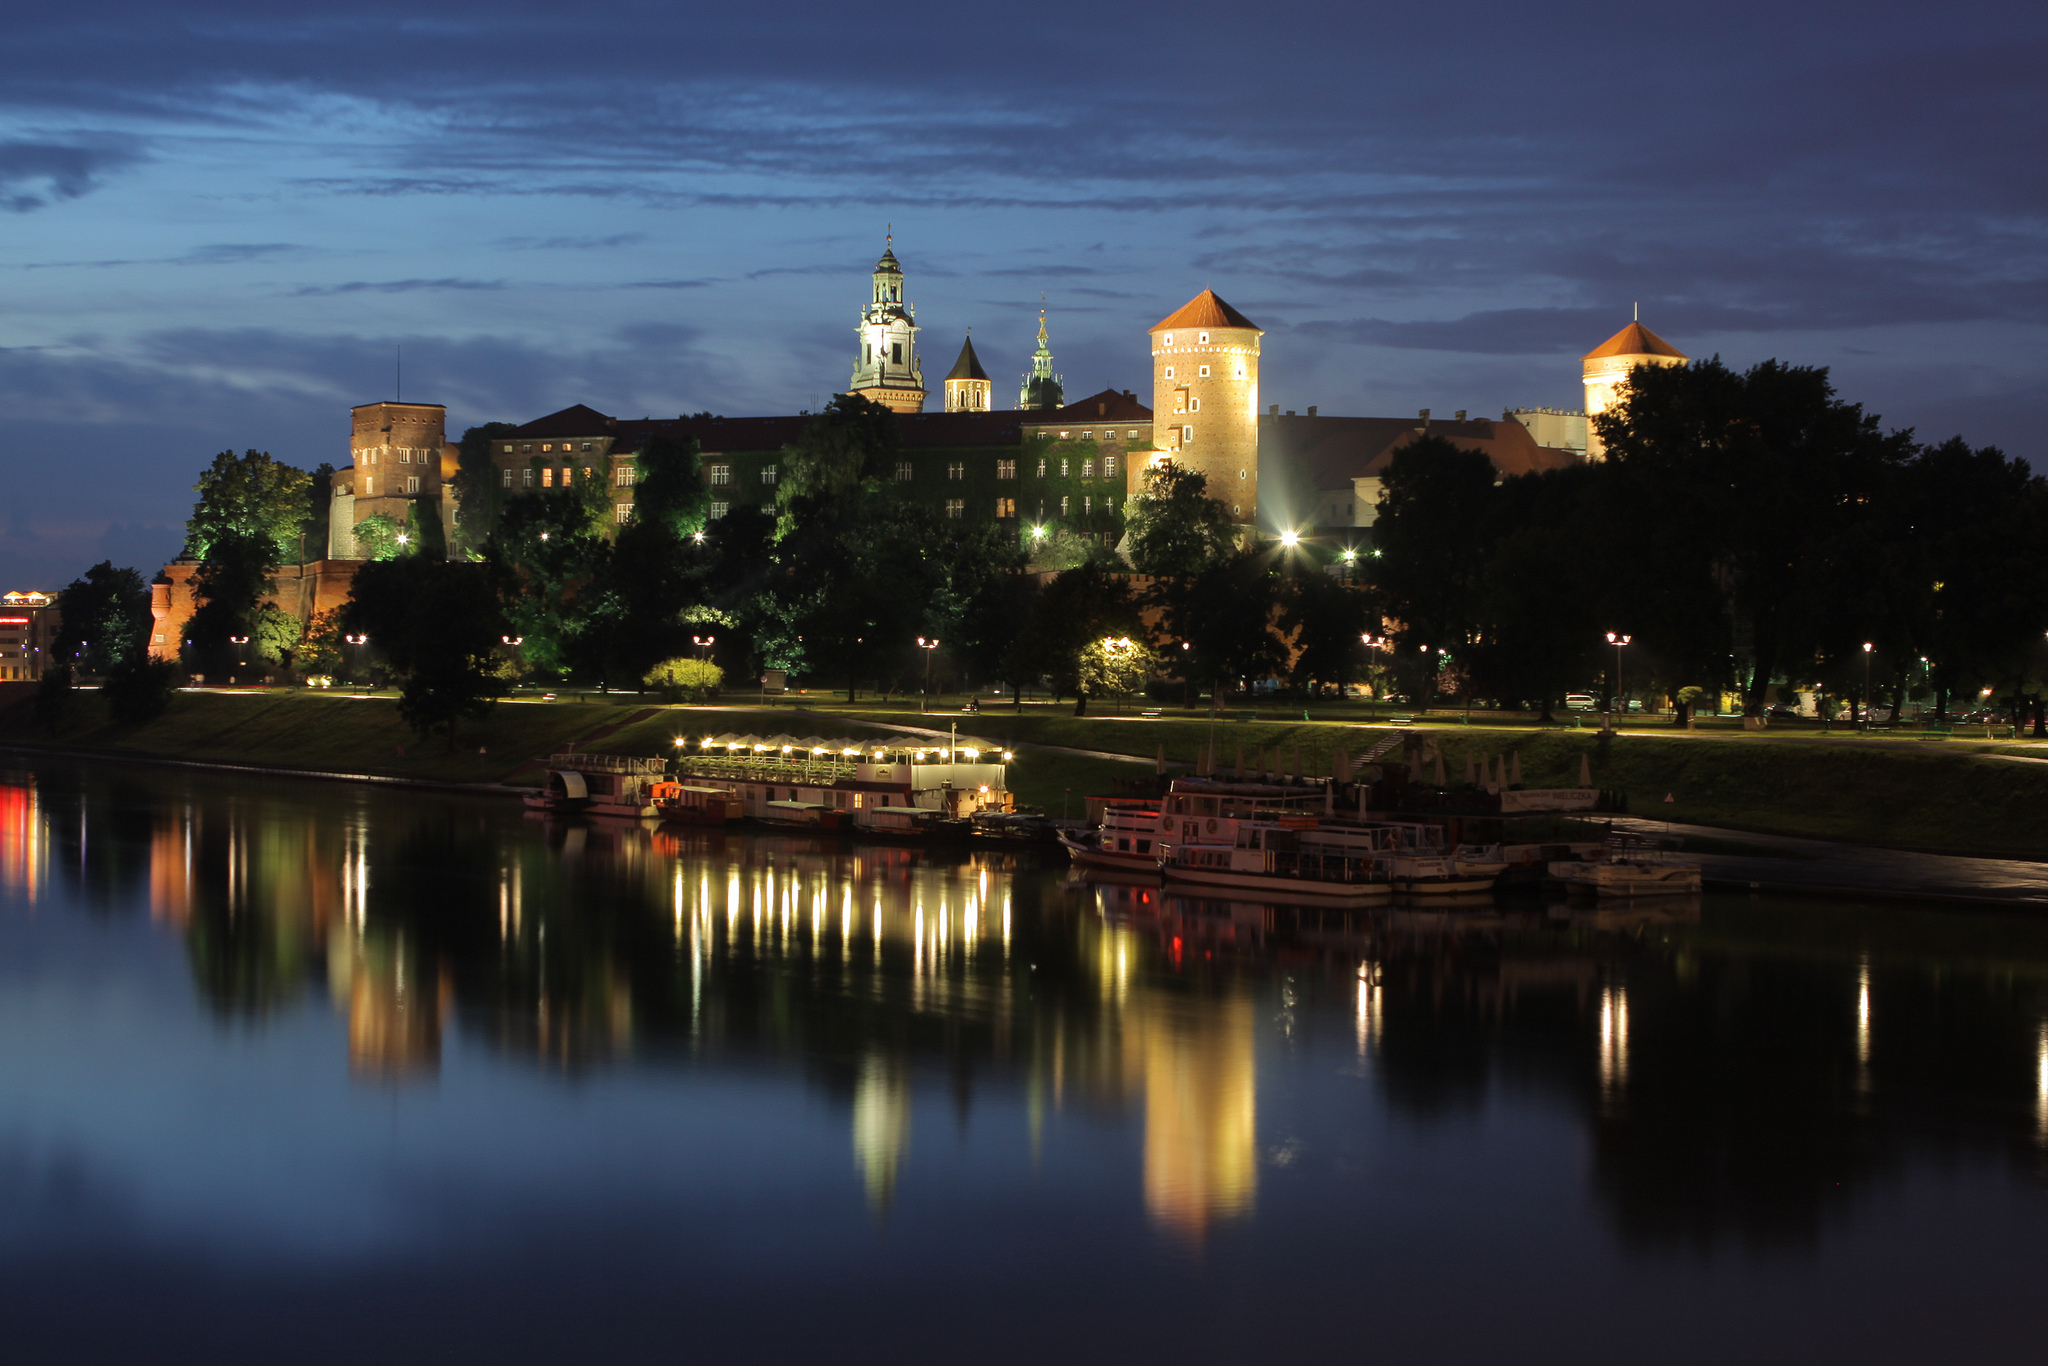 Wawel Royal Castle at night (Mariusz Cieszewski/Polish Ministry of Foreign Affairs)